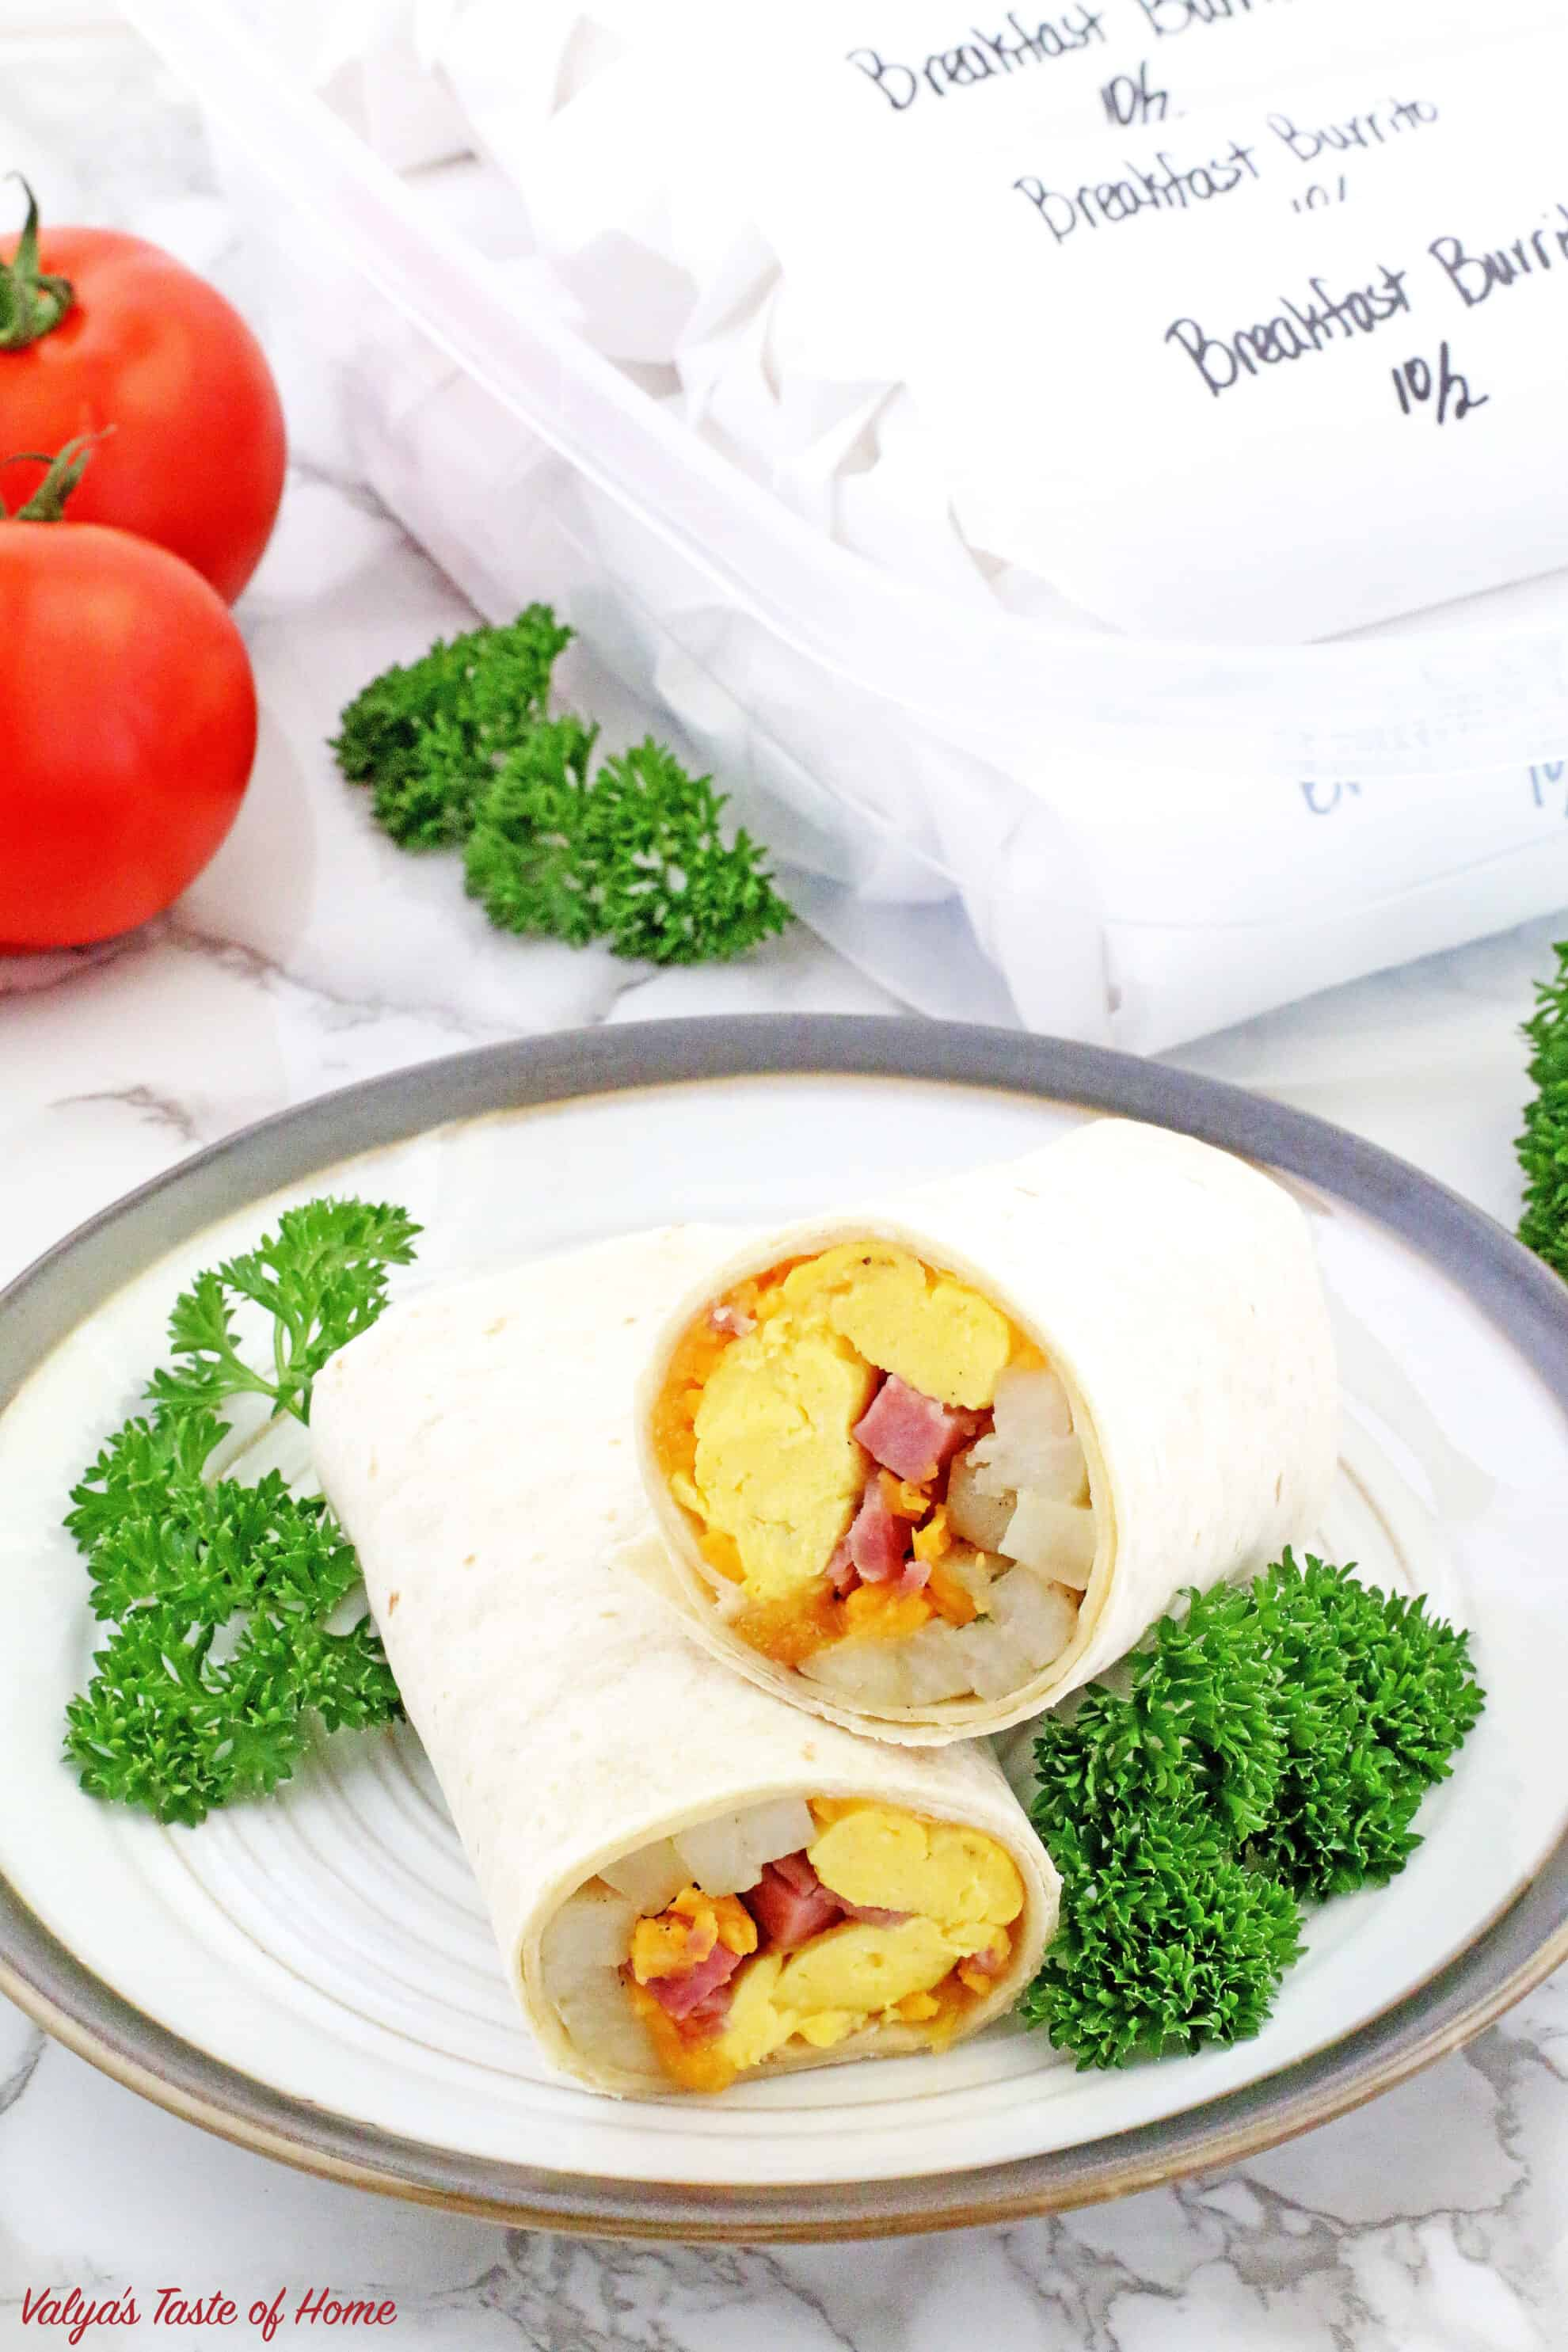 These Make-Ahead Breakfast Burritos are super easy to put together and brilliant for busy schedules. All the breakfast taste, zero-time spent cooking. It doesn't get any easier than this: reheat and eat!